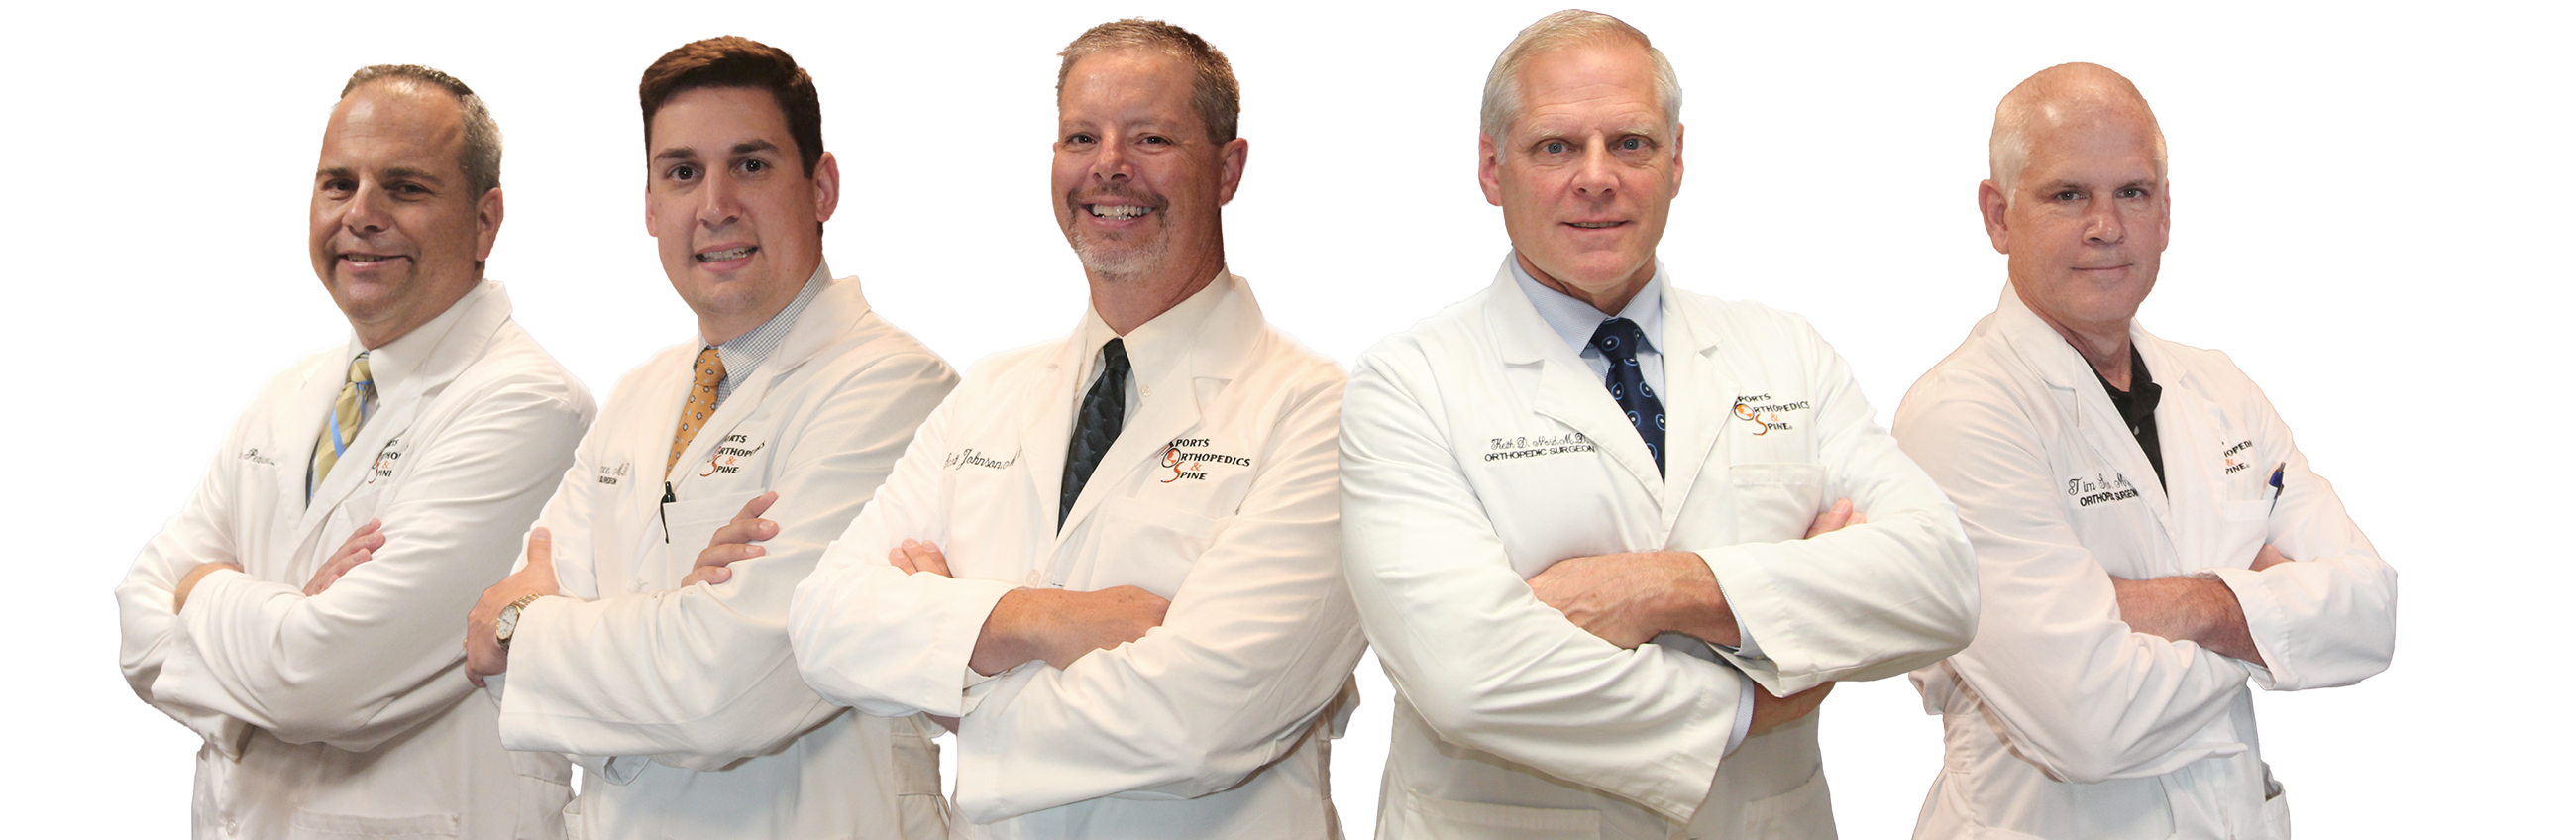 Meet The Doctors Sports Orthopedics And Spine